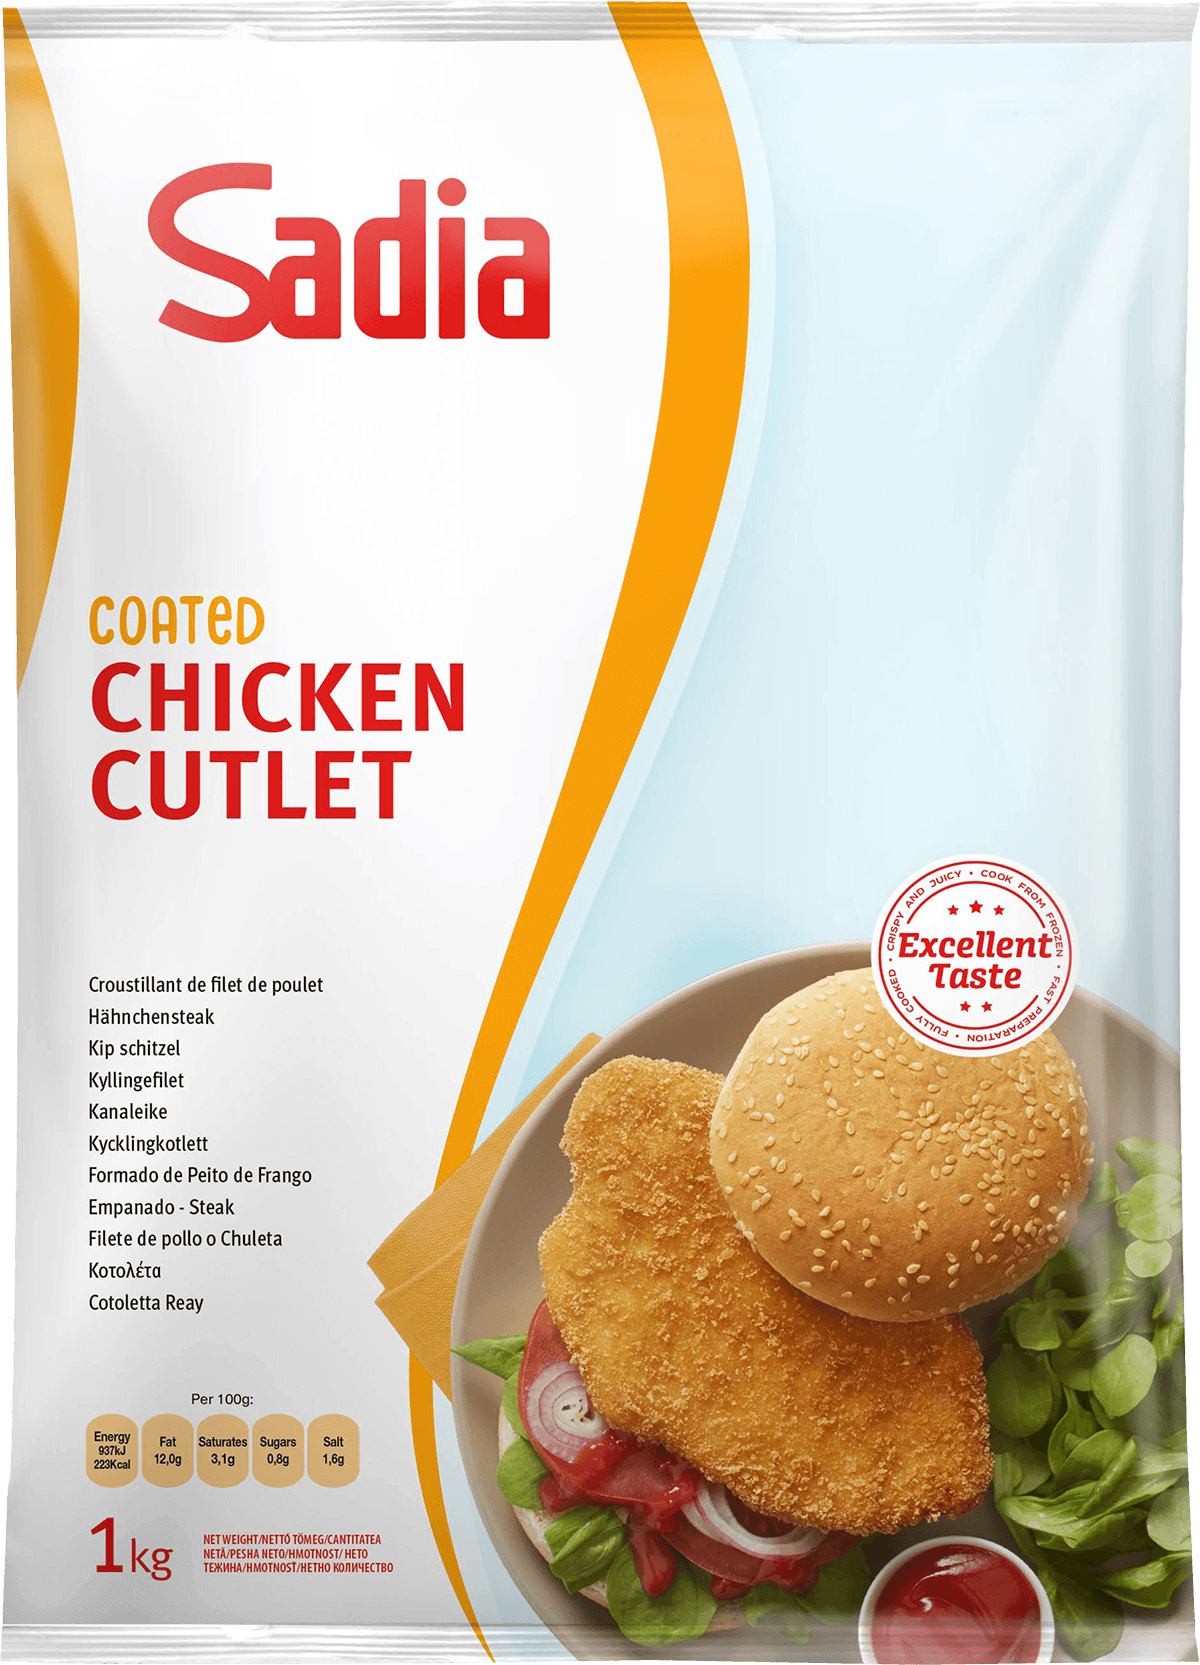 461433 65d650617 coated chicken cutlet 3x1kg ps